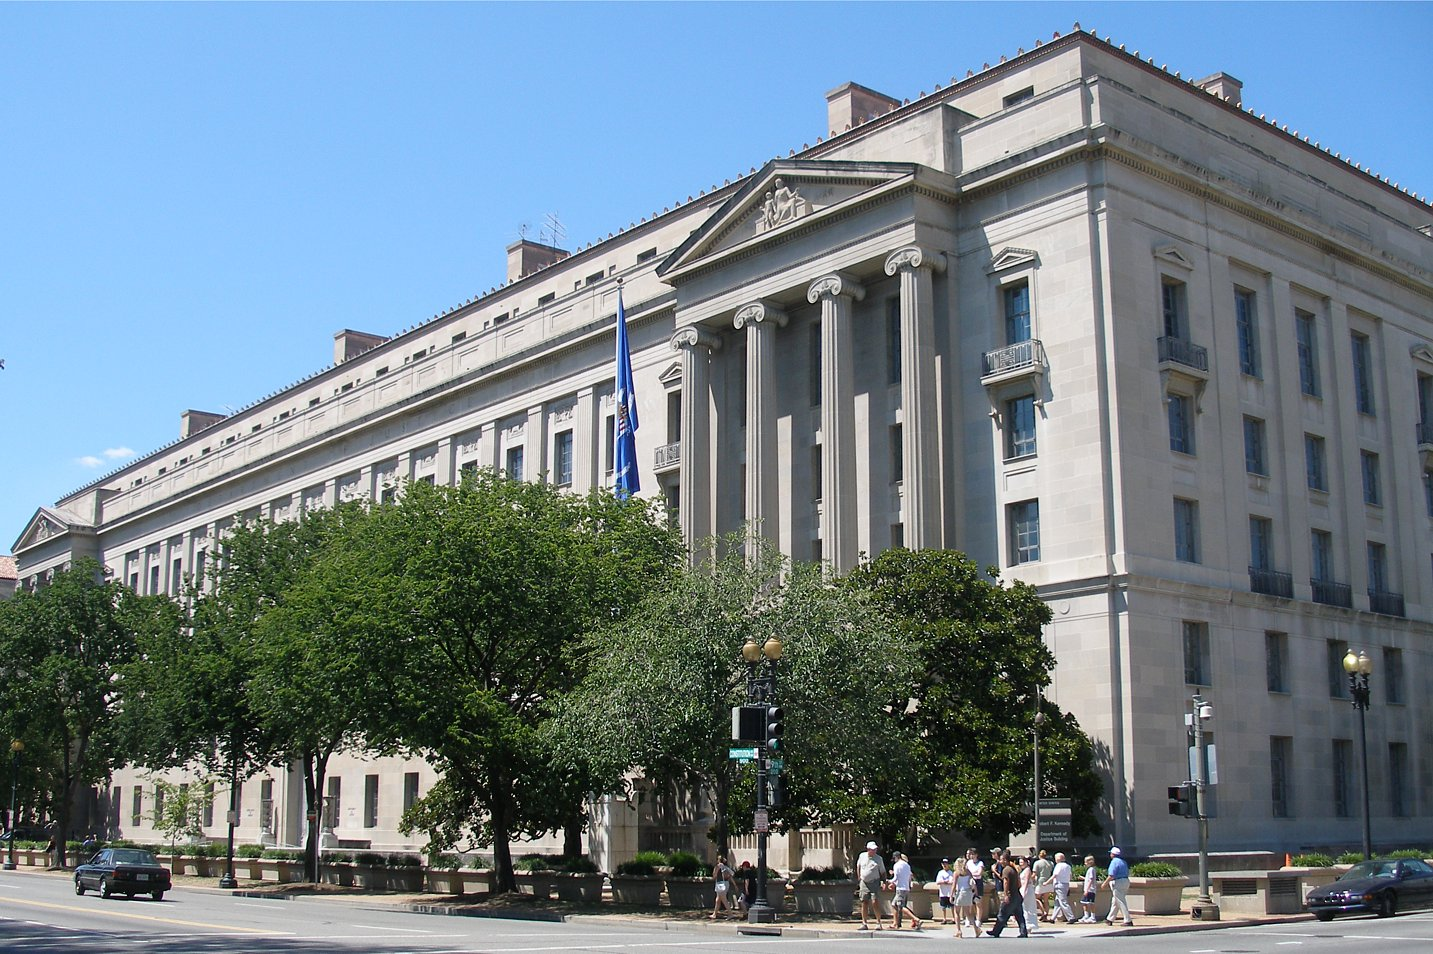 photo of outside of US Dept of Justice building